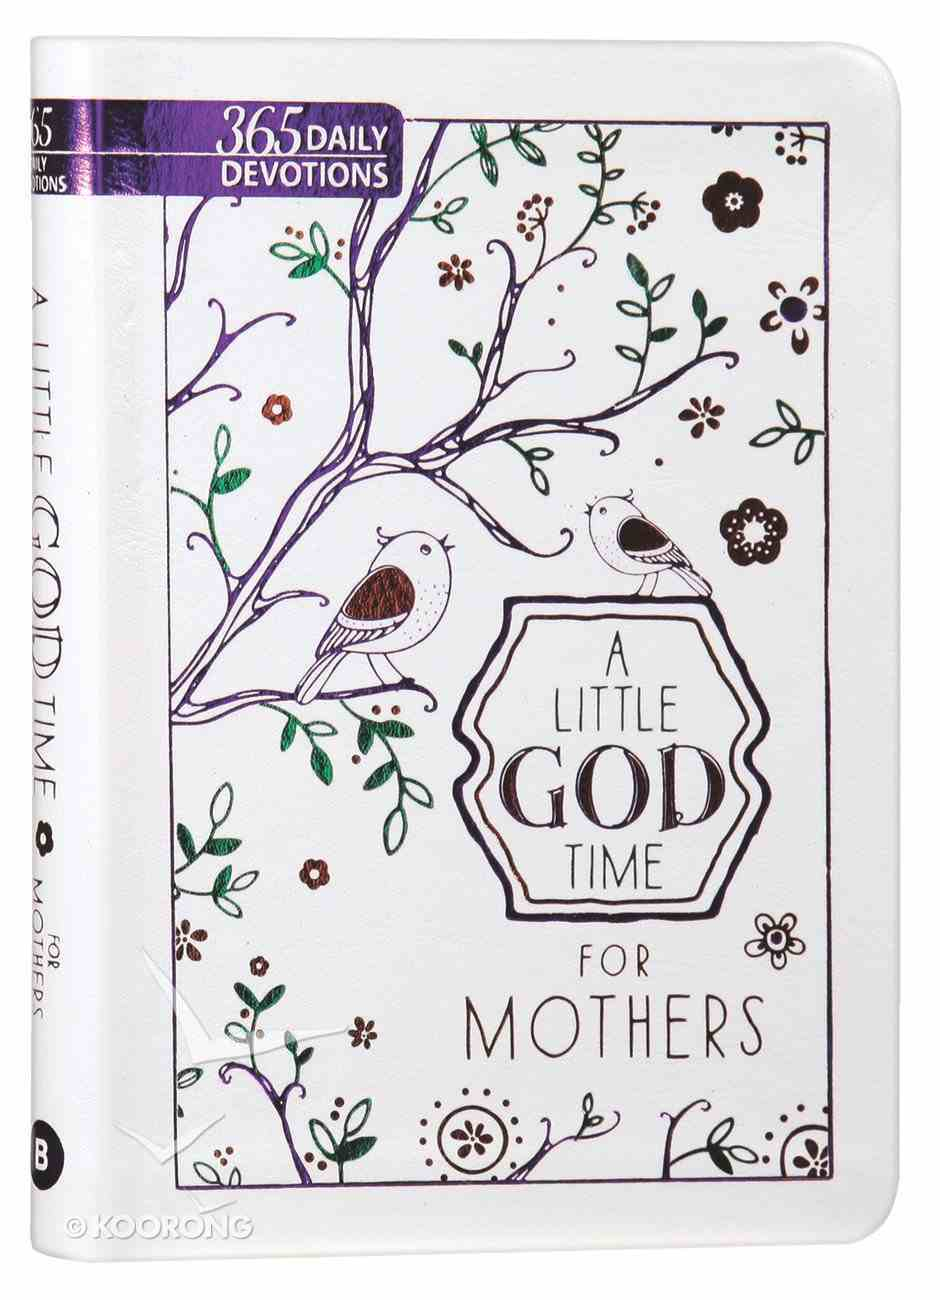 Little God Time For Mothers, A: 365 Daily Devotions (365 Daily Devotions Series) Imitation Leather